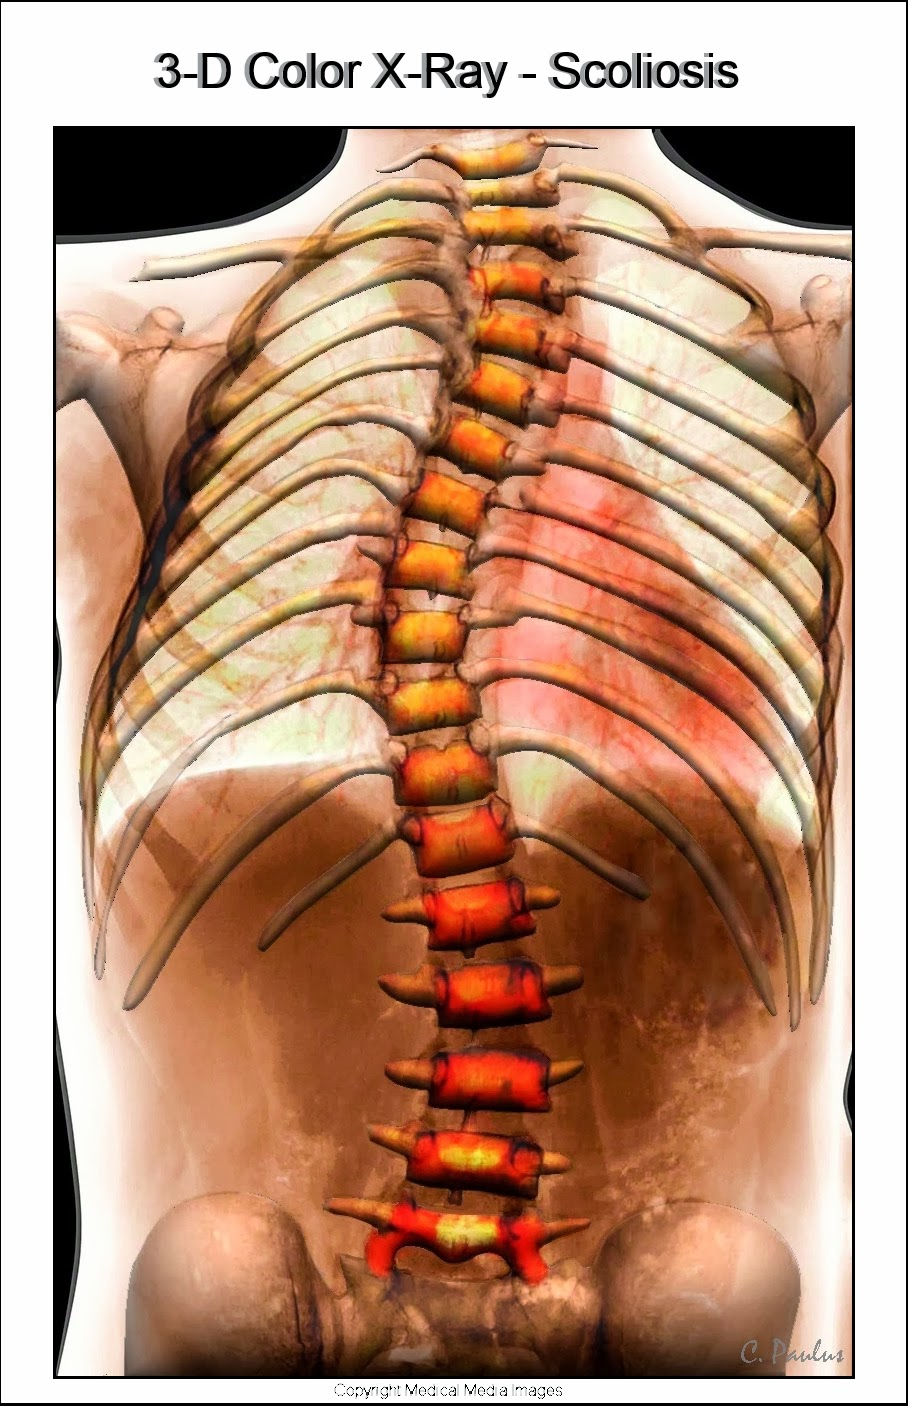 3-D Color Scoliosis X-Ray